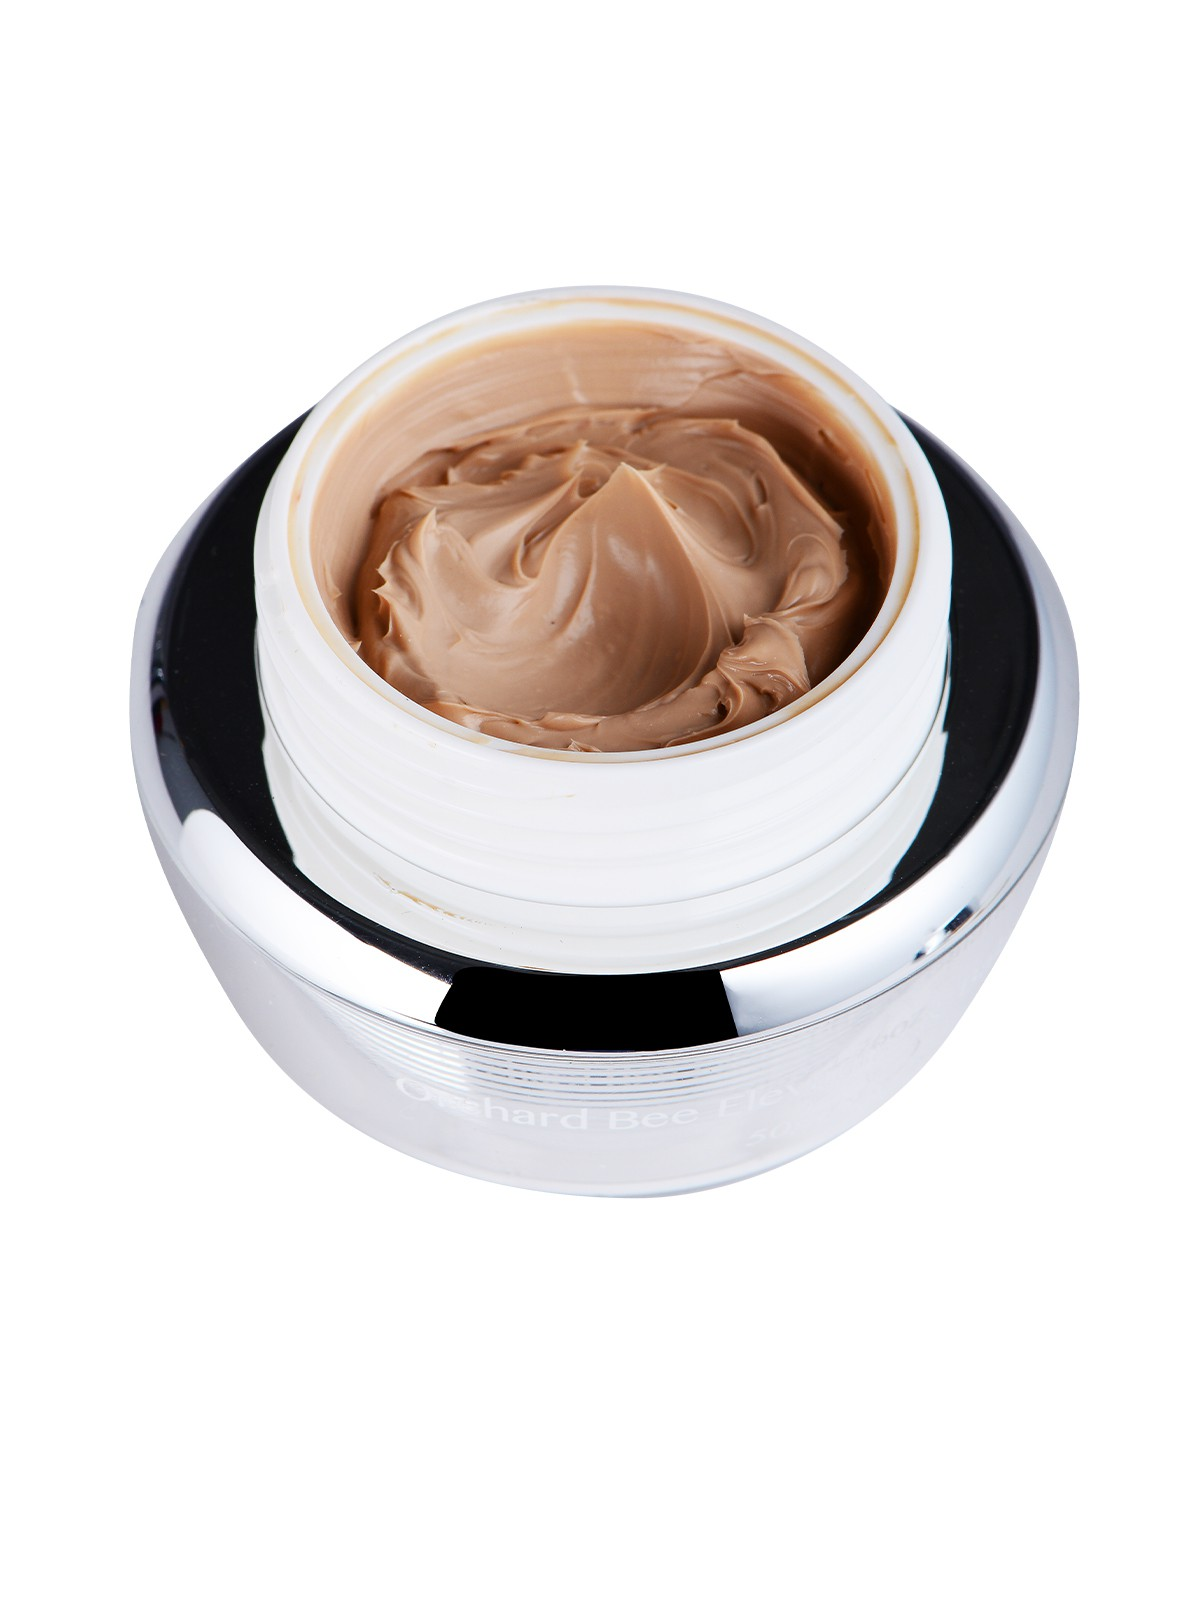 Orchard Bee Elevating & Balancing Mask with removed lid